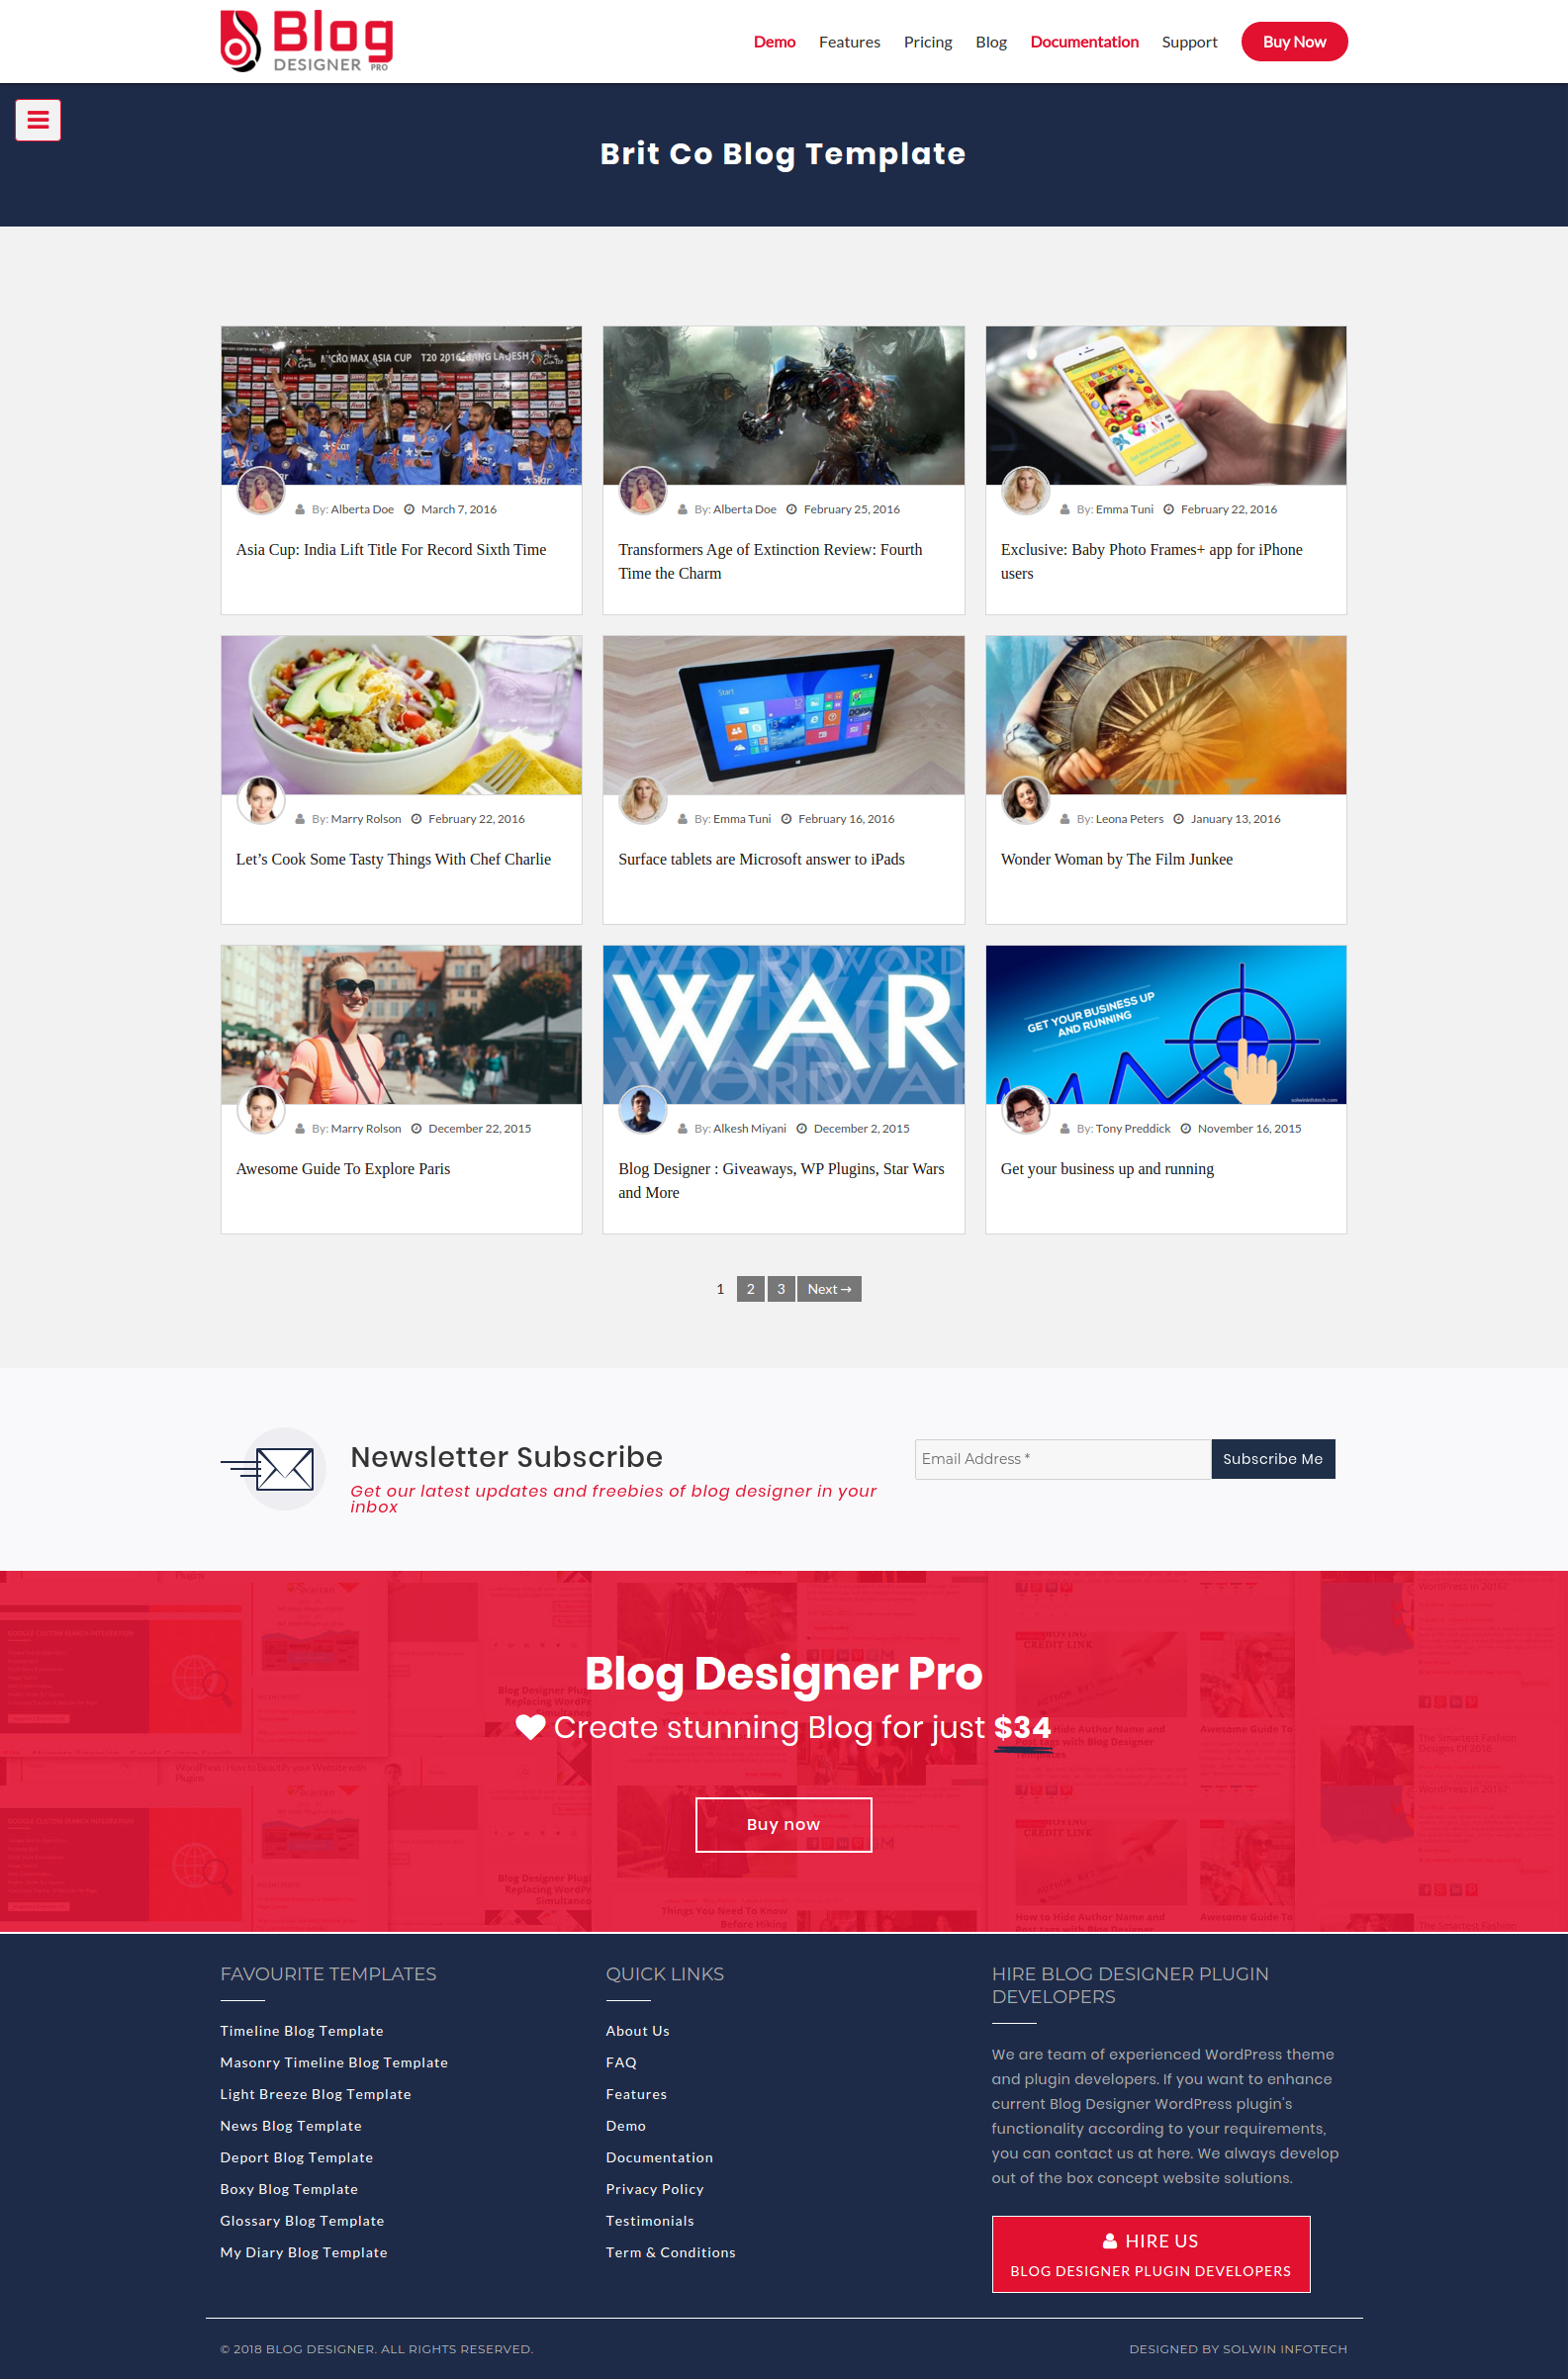 Brit Co Blog Template - Blog Designer - WordPress Plugin